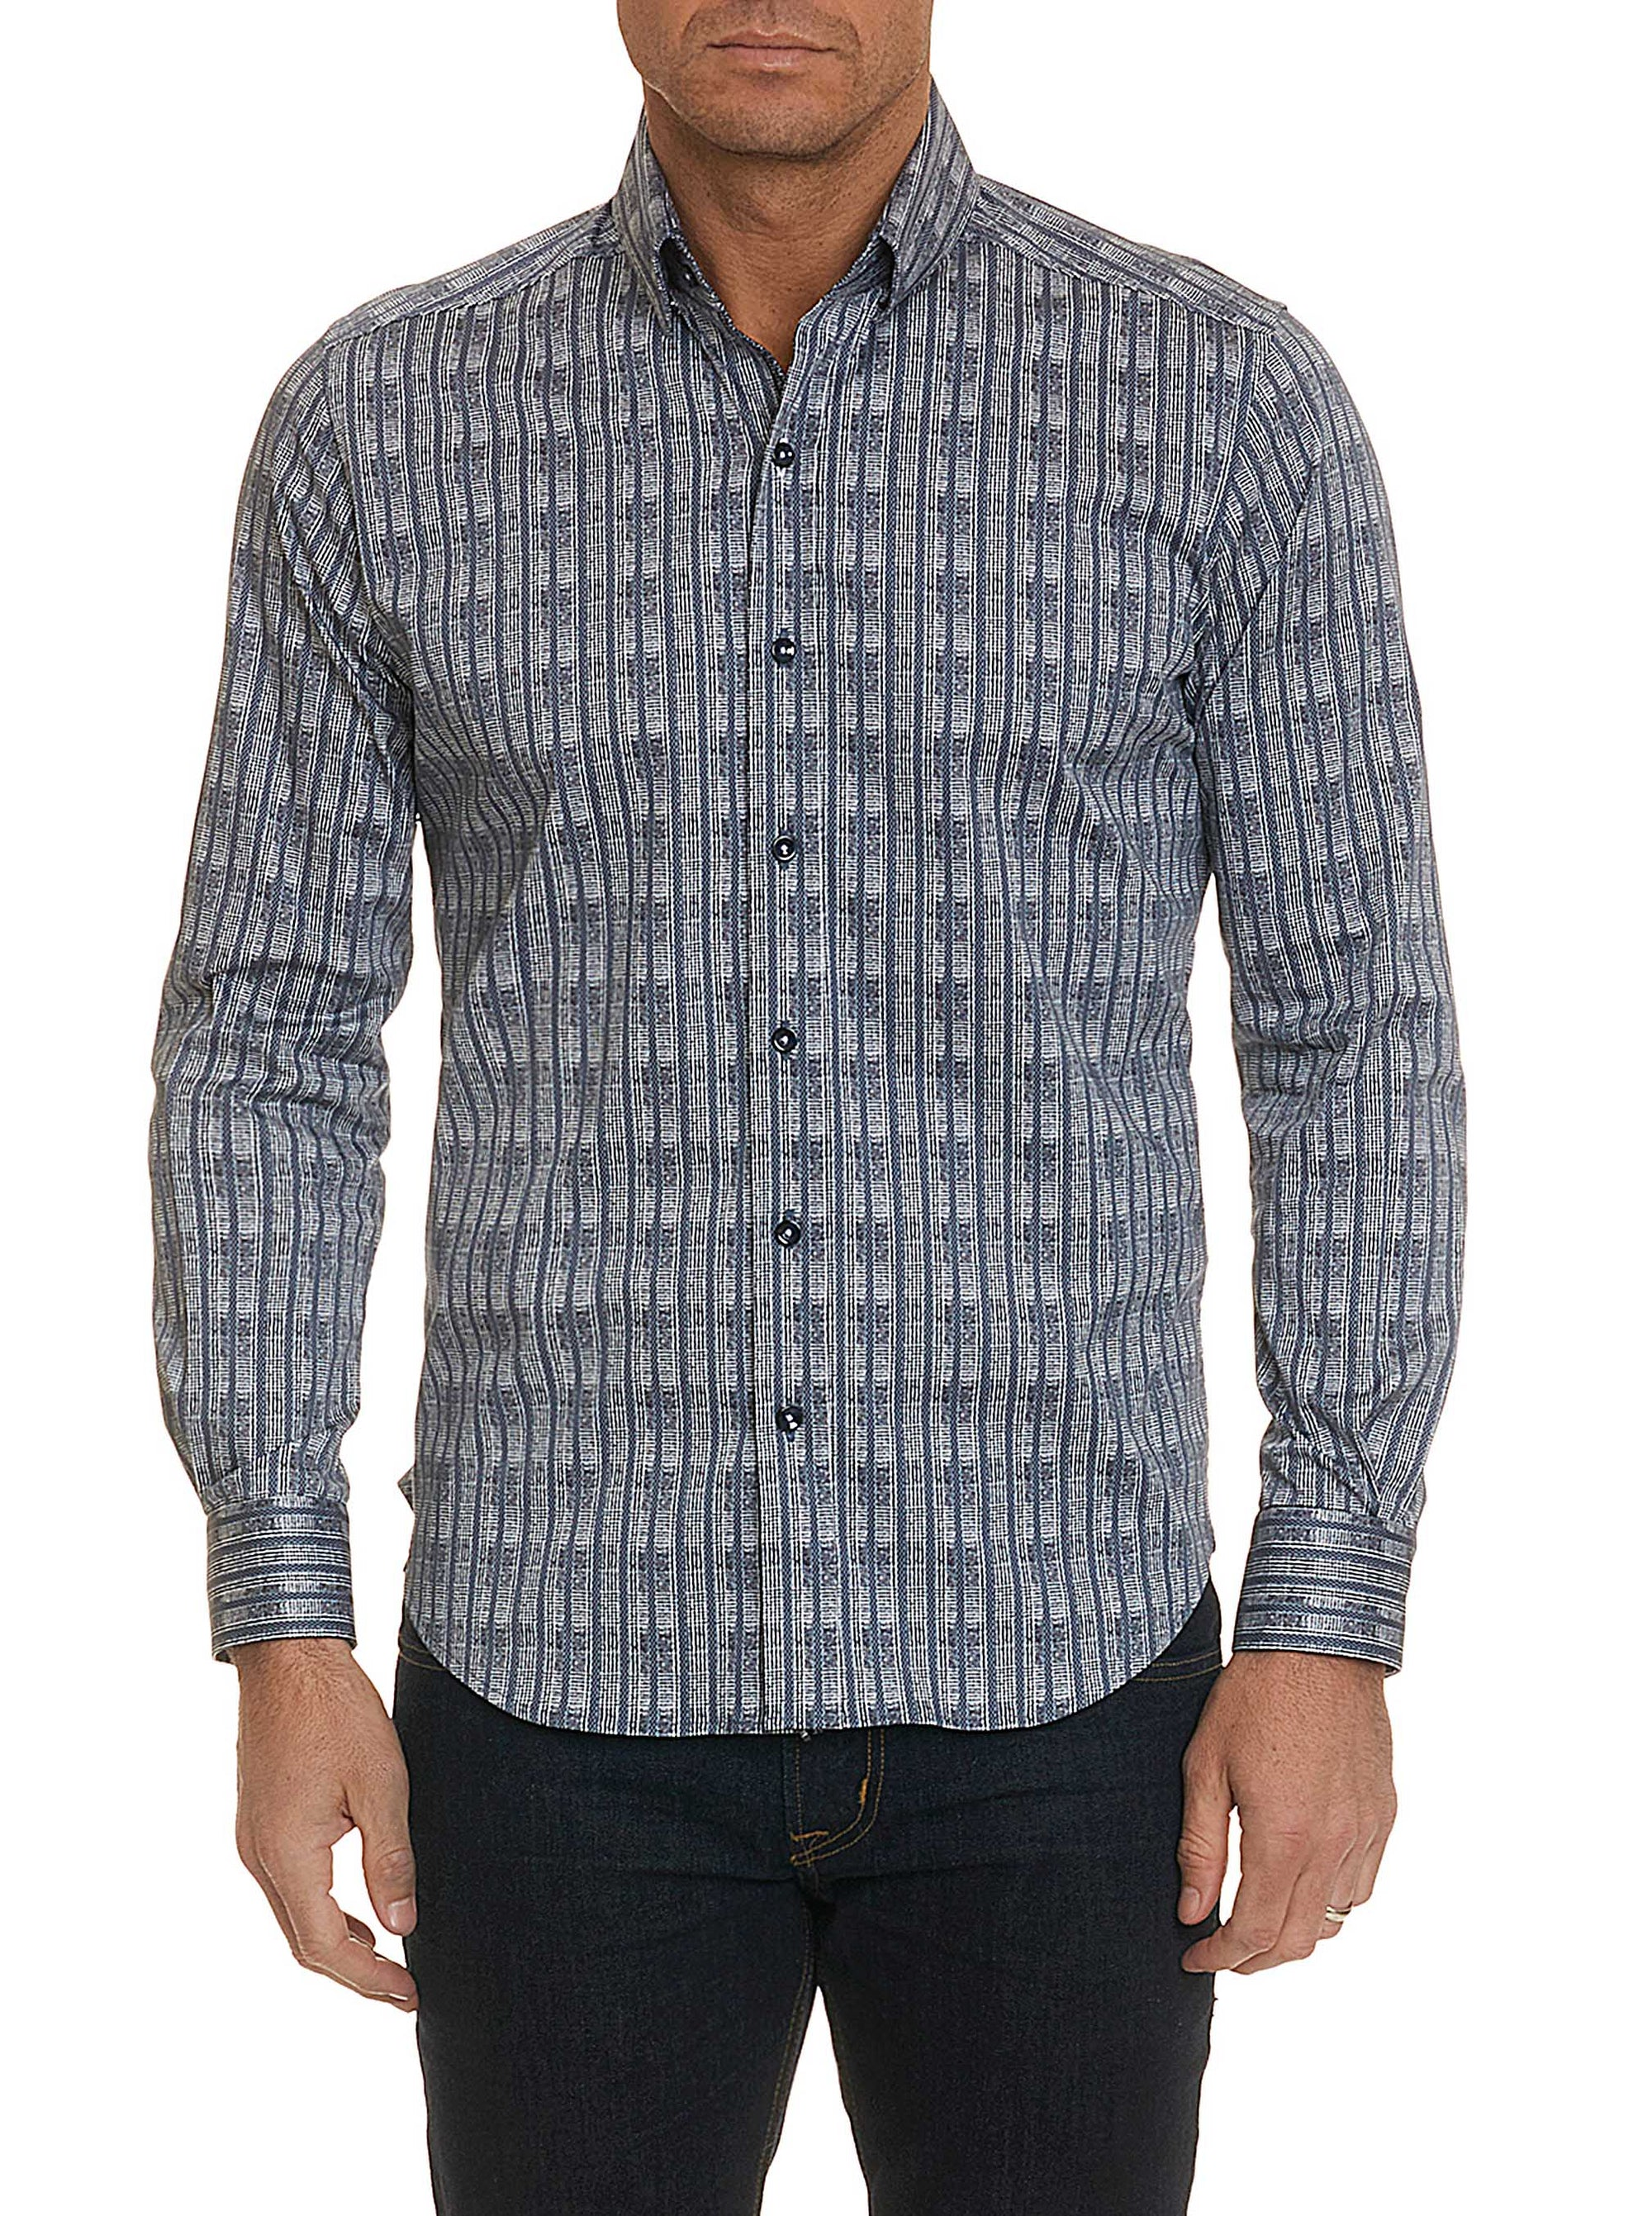 Robert Graham Banyan Button Down Sport Shirt MF181114TF